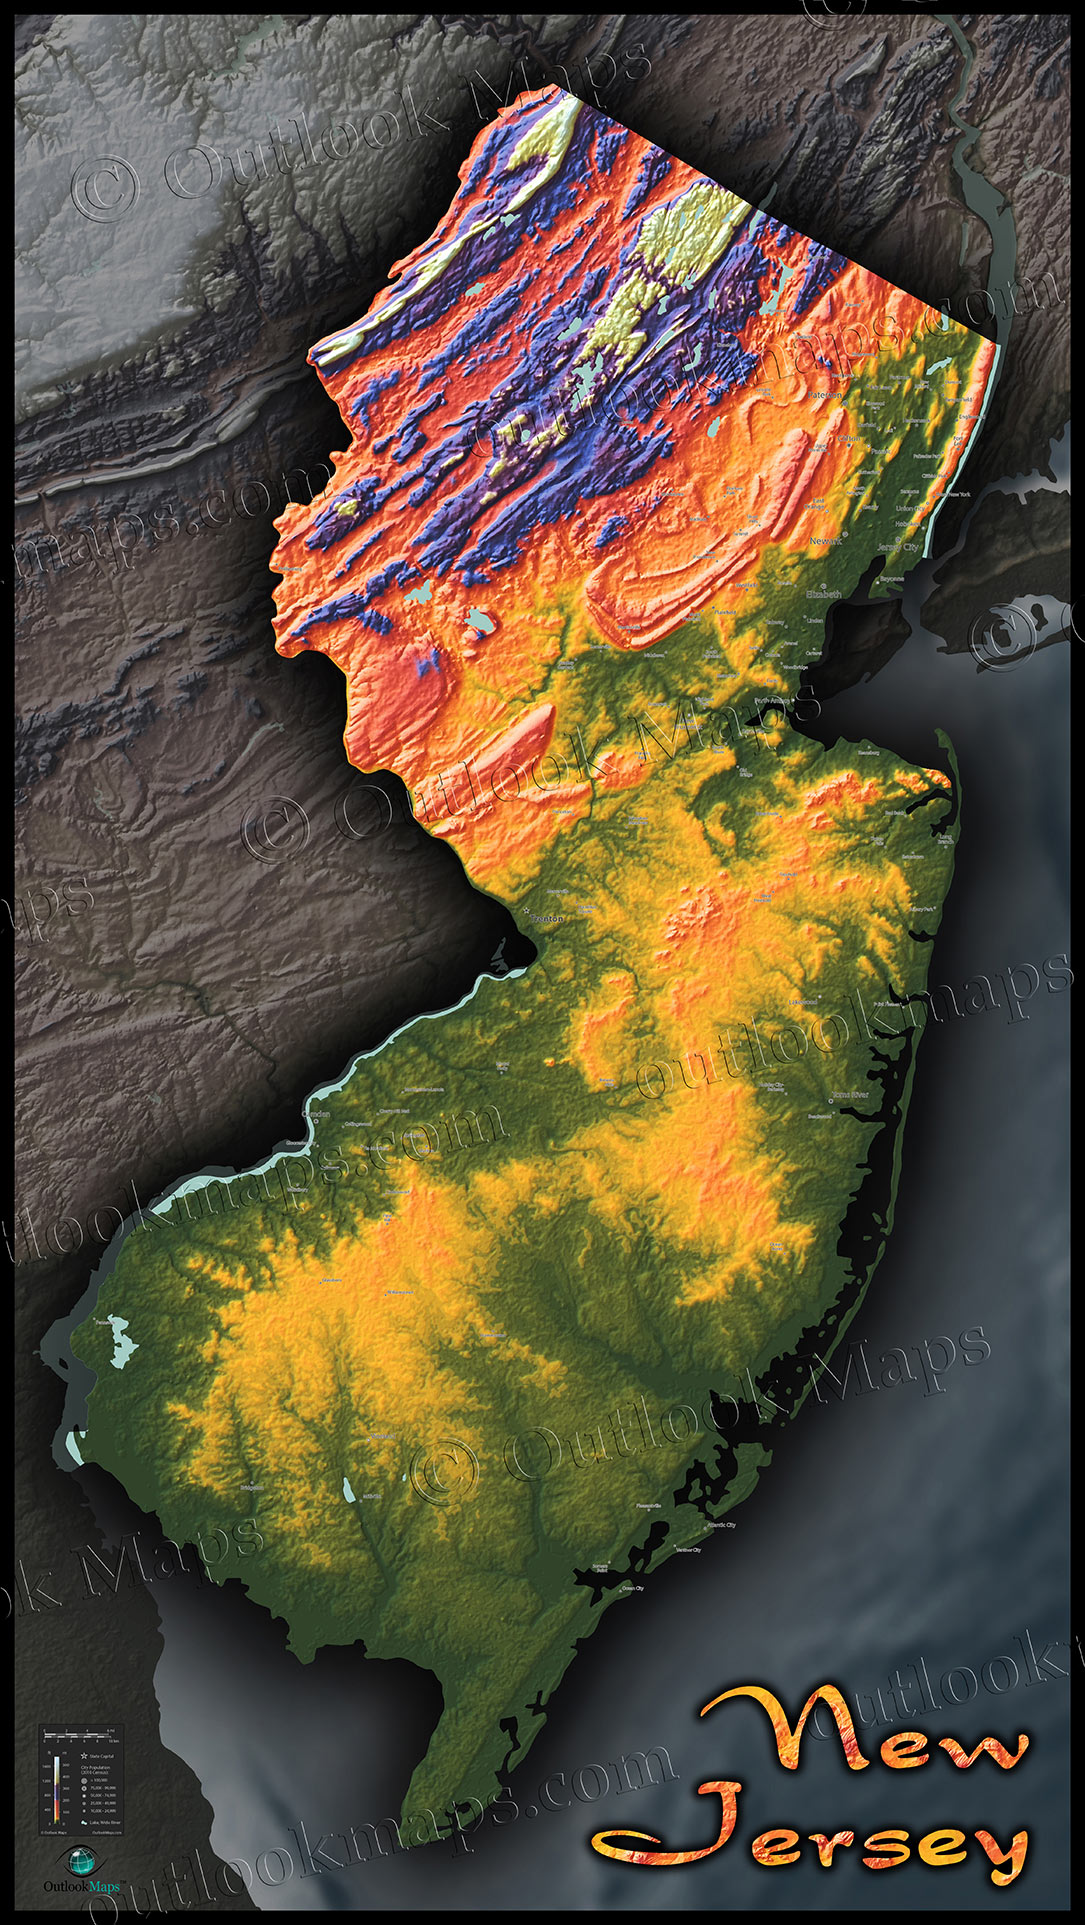 topographic map new jersey New Jersey Topography Map Colorized Terrain By Elevation